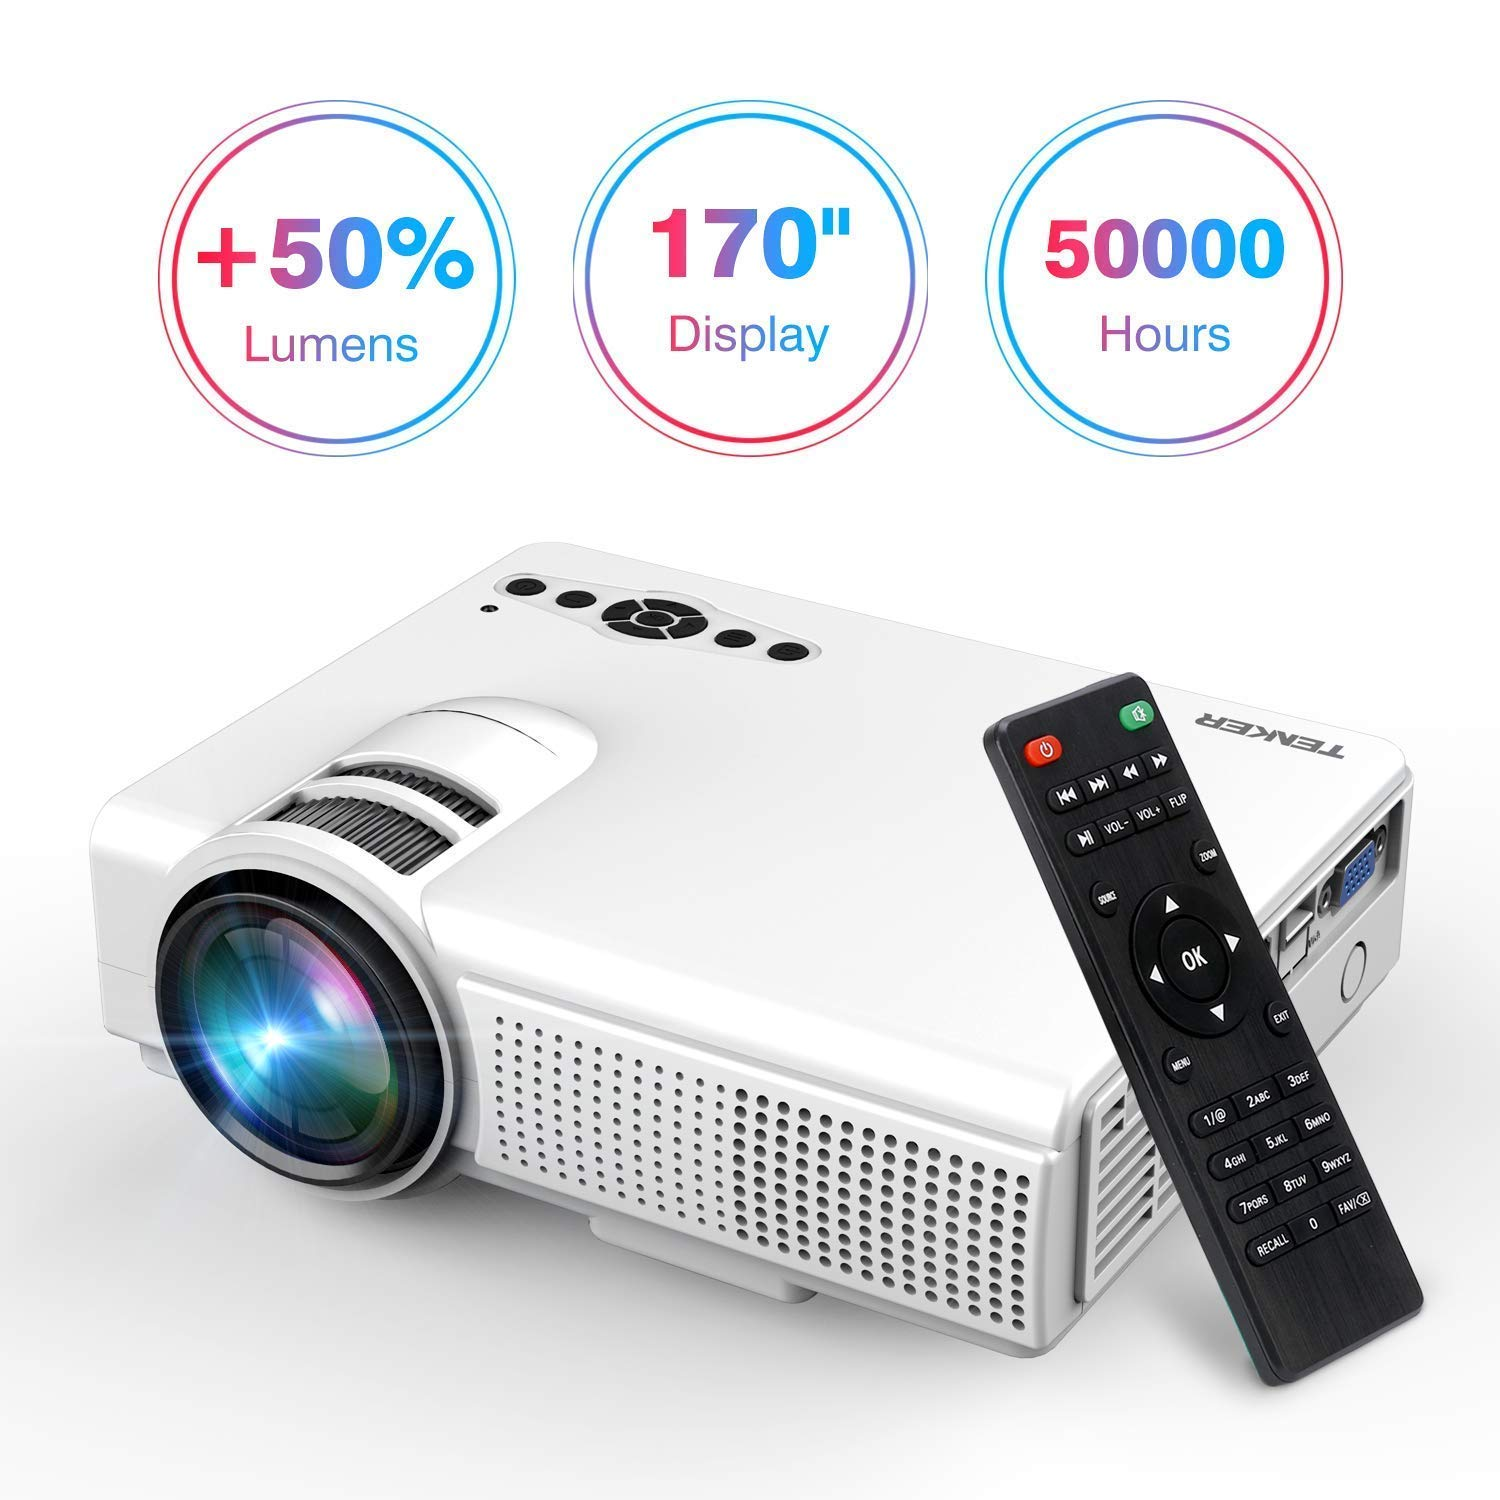 TENKER Upgrade Lumens Q5 Mini Projector, with Big Display LED Full HD Video Projector, Compatible with 1080p HDMI, Fire TV Stick, VGA, USB, AV for Home Theater Entertainment, Party and Games (White) by TENKER (Image #1)